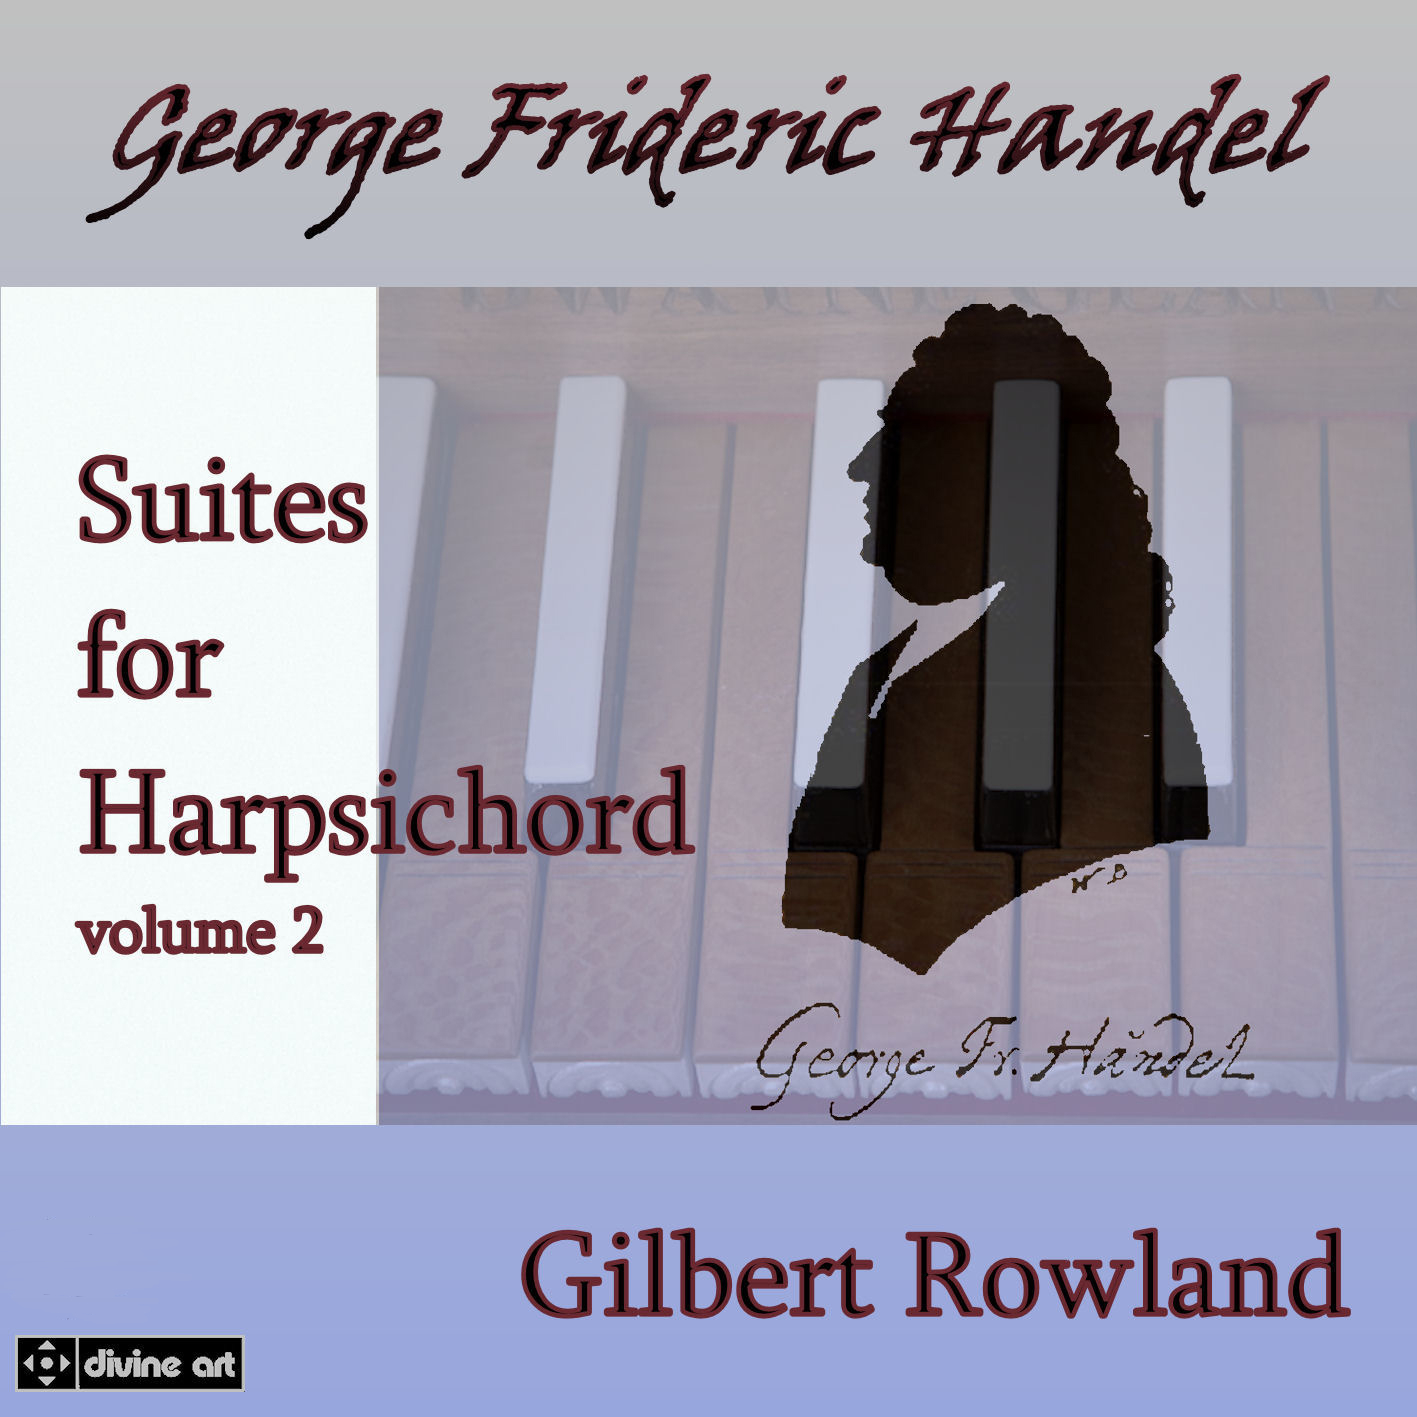 Suite in C Minor, HWV 444, Suite in C Minor, HWV 444: I. Prelude